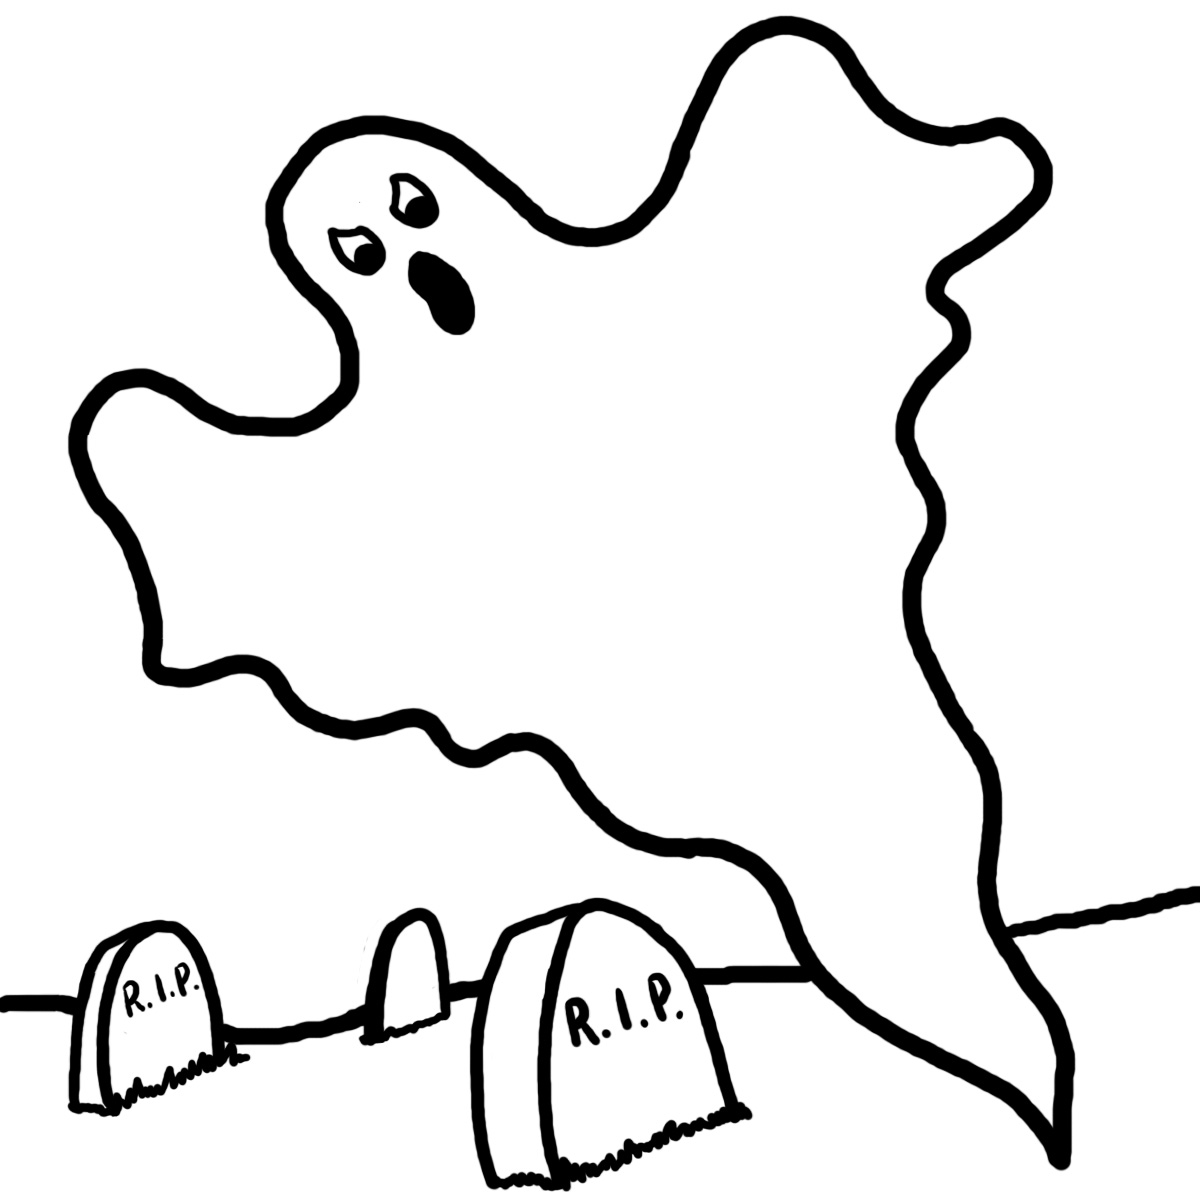 Zombie Coloring Pictures in addition Supernatural Chibi in addition Stock Illustration Ghost Faces Pumpkin Faces Design Image44265173 in addition Scary Haunted House Drawing together with Happy Ghost Clip Art. on scary halloween ghost drawings